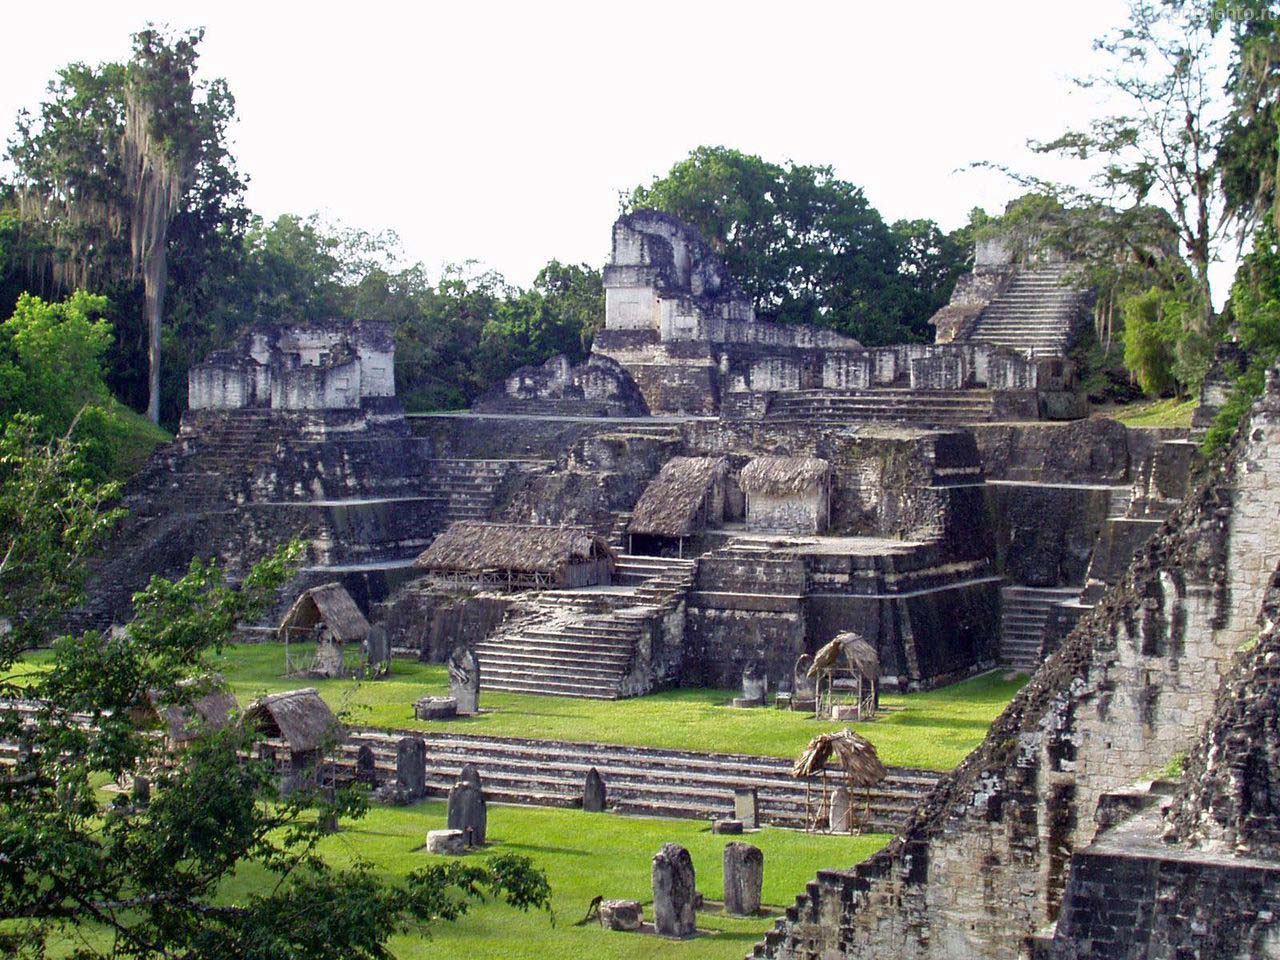 the mayan languages of guatemala and mexico This mayan language is spoken in mexico and in central guatemala near the western border with mexico, and has two main dialects: 6,000 to 7,000 people speak the san mateo ixtatan dialect (new testament published in 1970) and 8,000 speak the san sebastian.